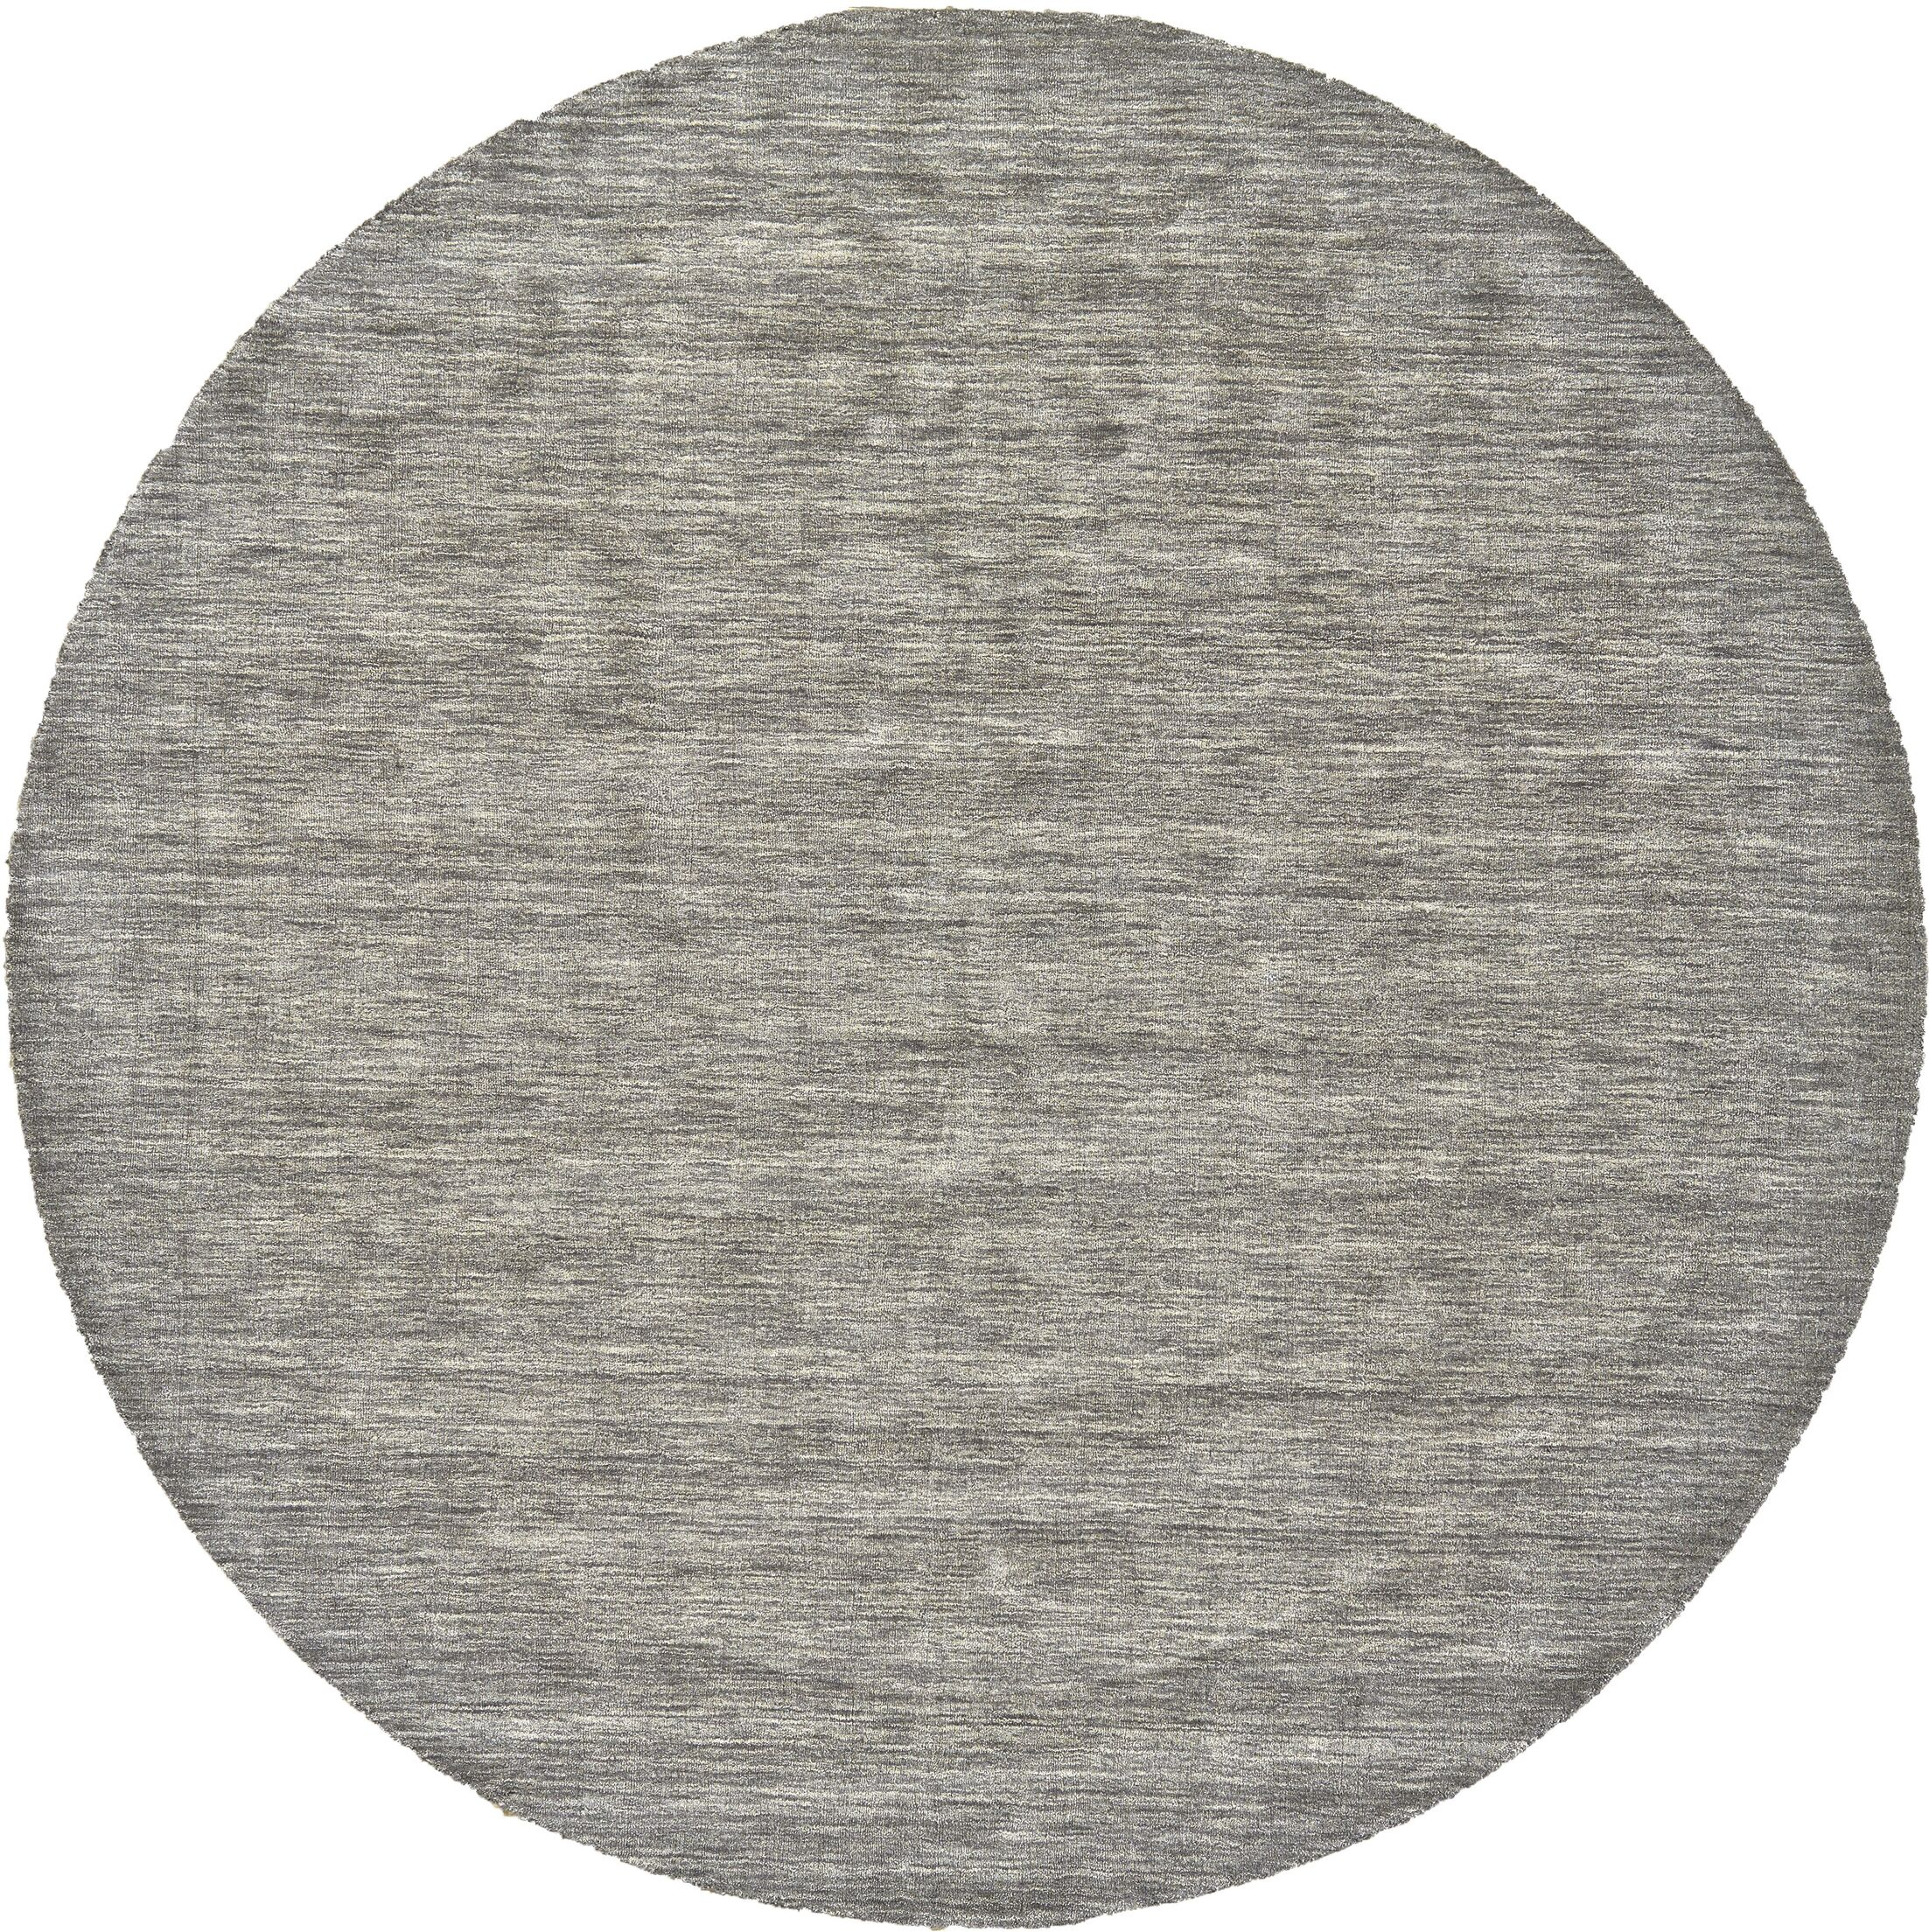 Chazy Hand-Tufted Gray Area Rug Rug Size: Round 10'